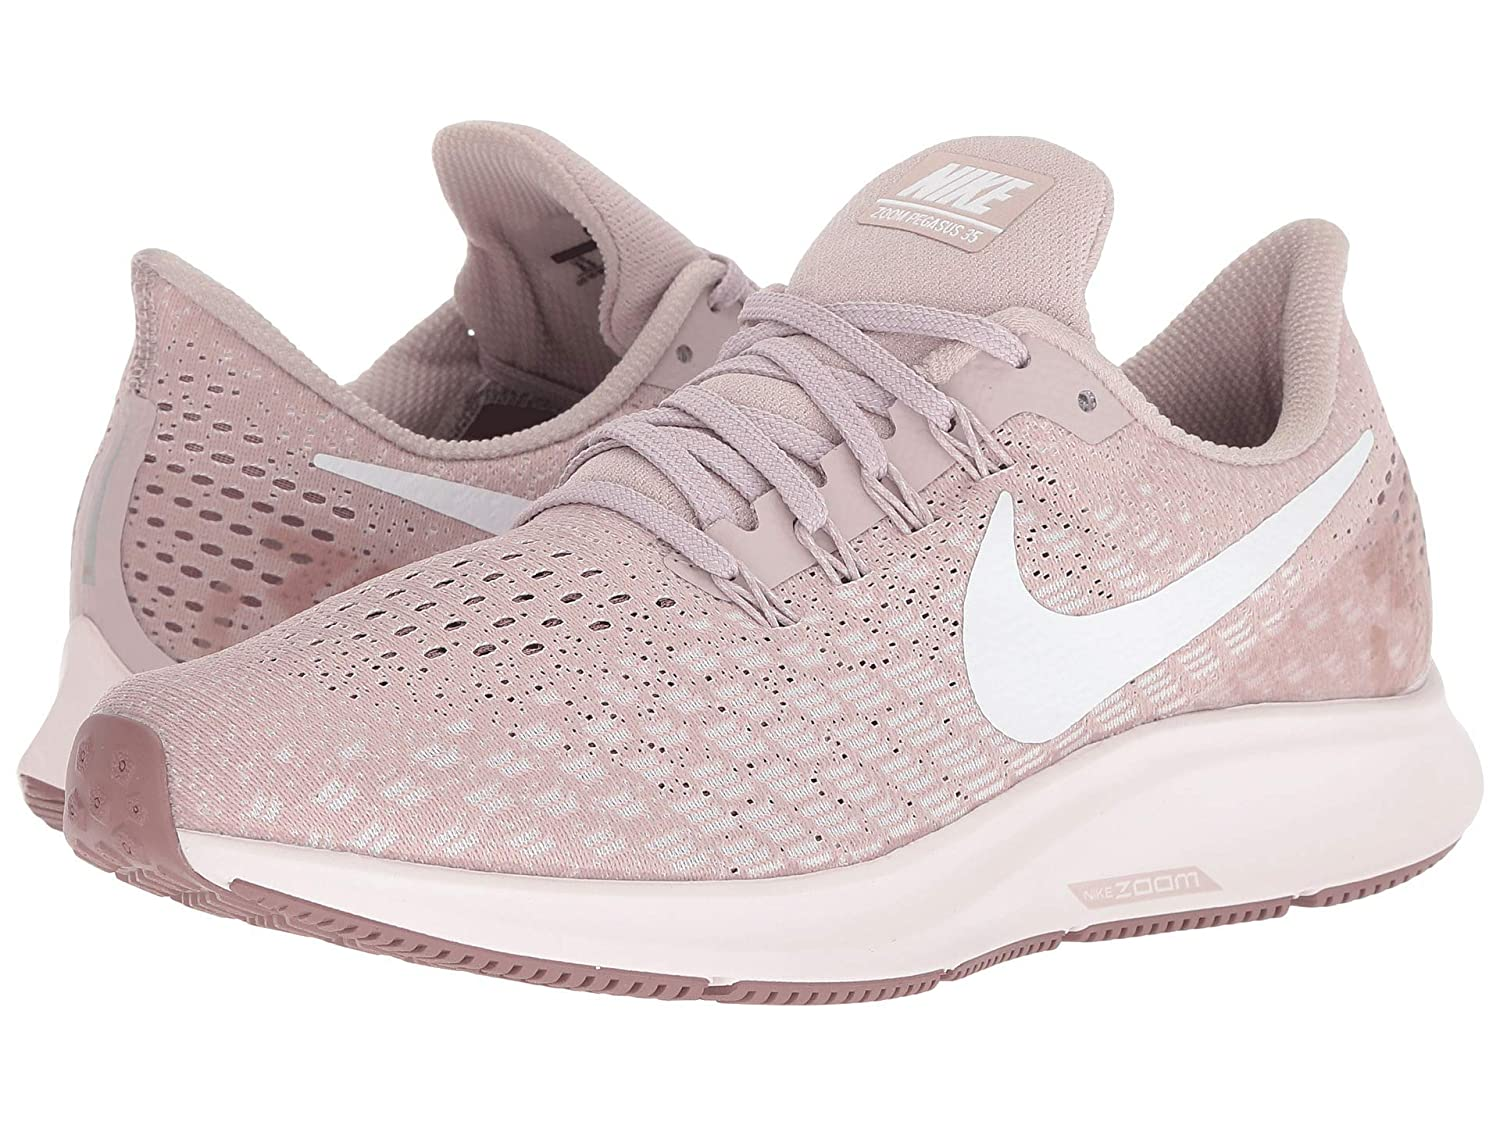 [NIKE(ナイキ)] レディーステニスシューズスニーカー靴 Air Zoom Pegasus 35 Particle Rose/White/Smokey Mauve 7 (24cm) B - Medium B07HW1DQGJ